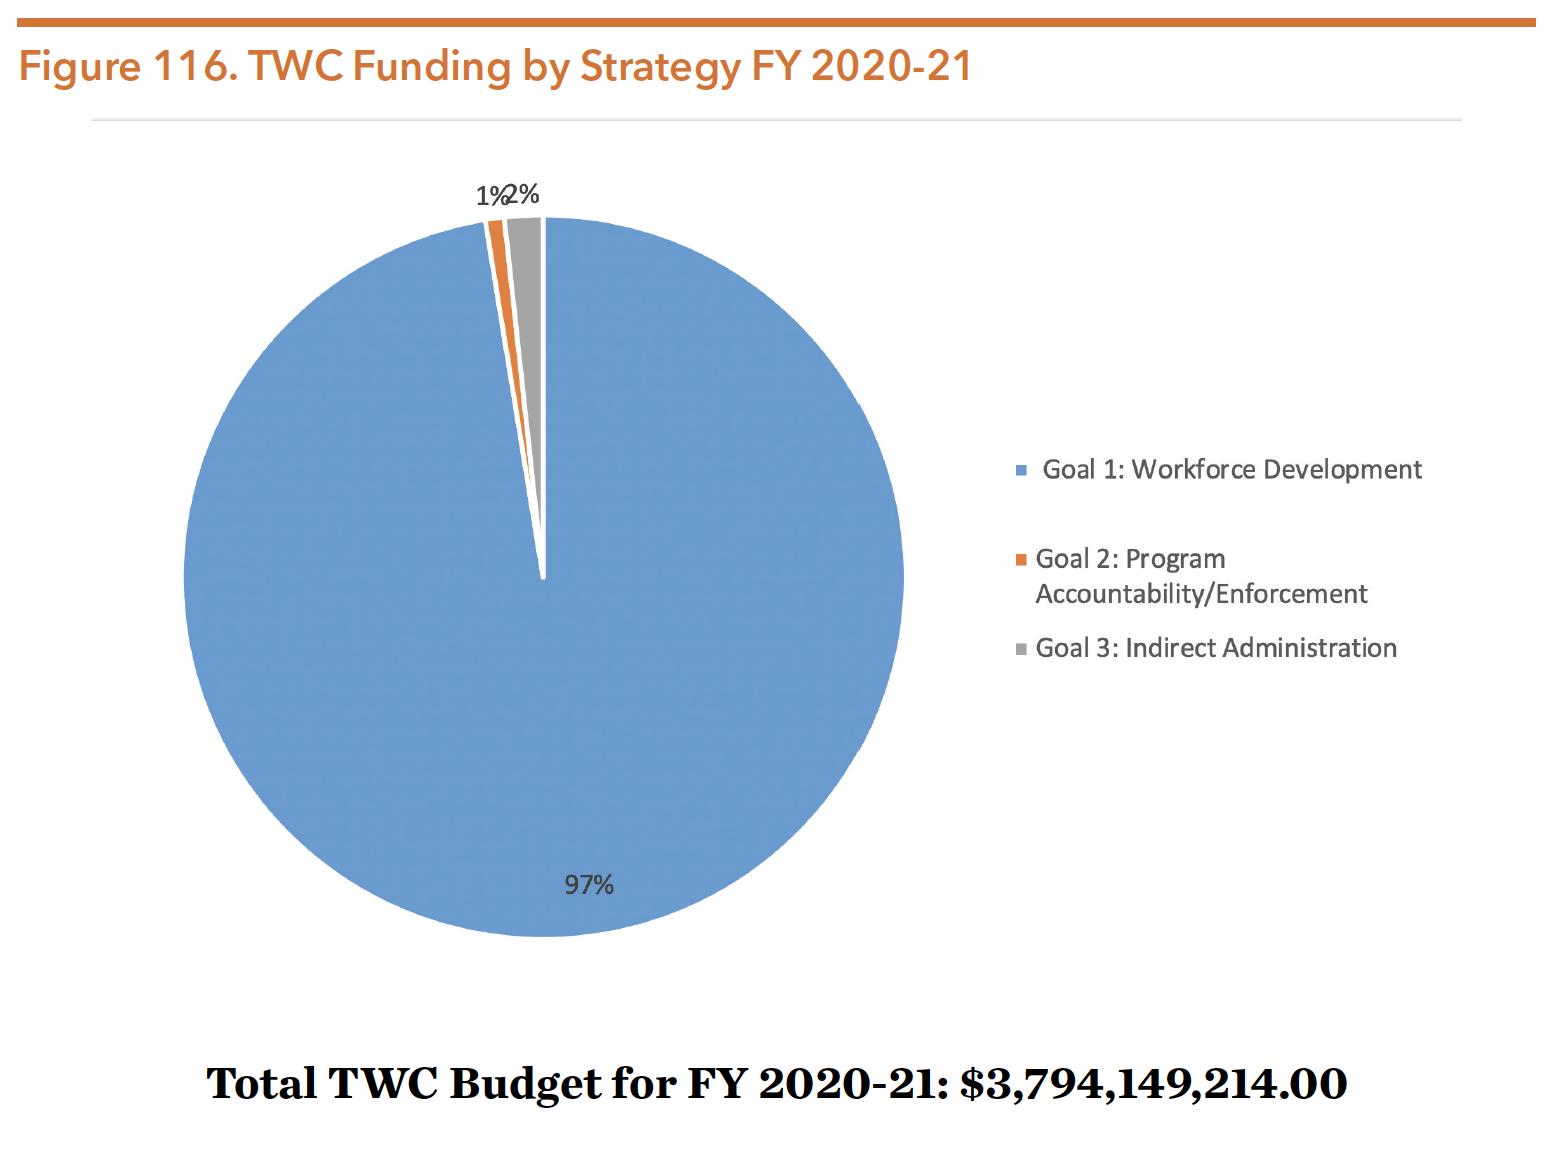 Figure 116. TWC Funding by Strategy FY 2020-21